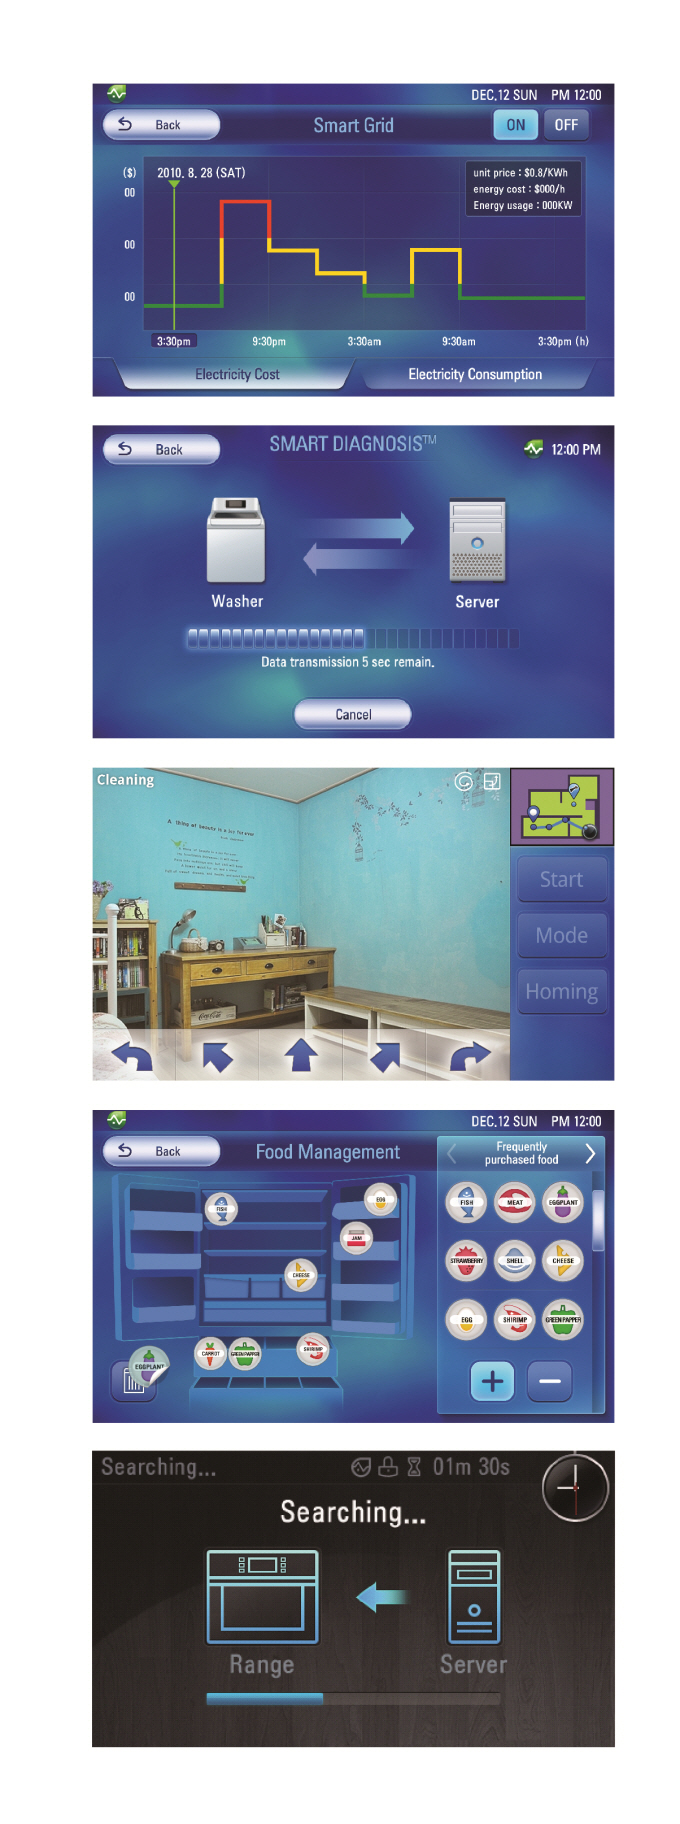 Five screenshots of the Smart Grid user interface, including Smart Diagnosis™ and Food Management for smart devices